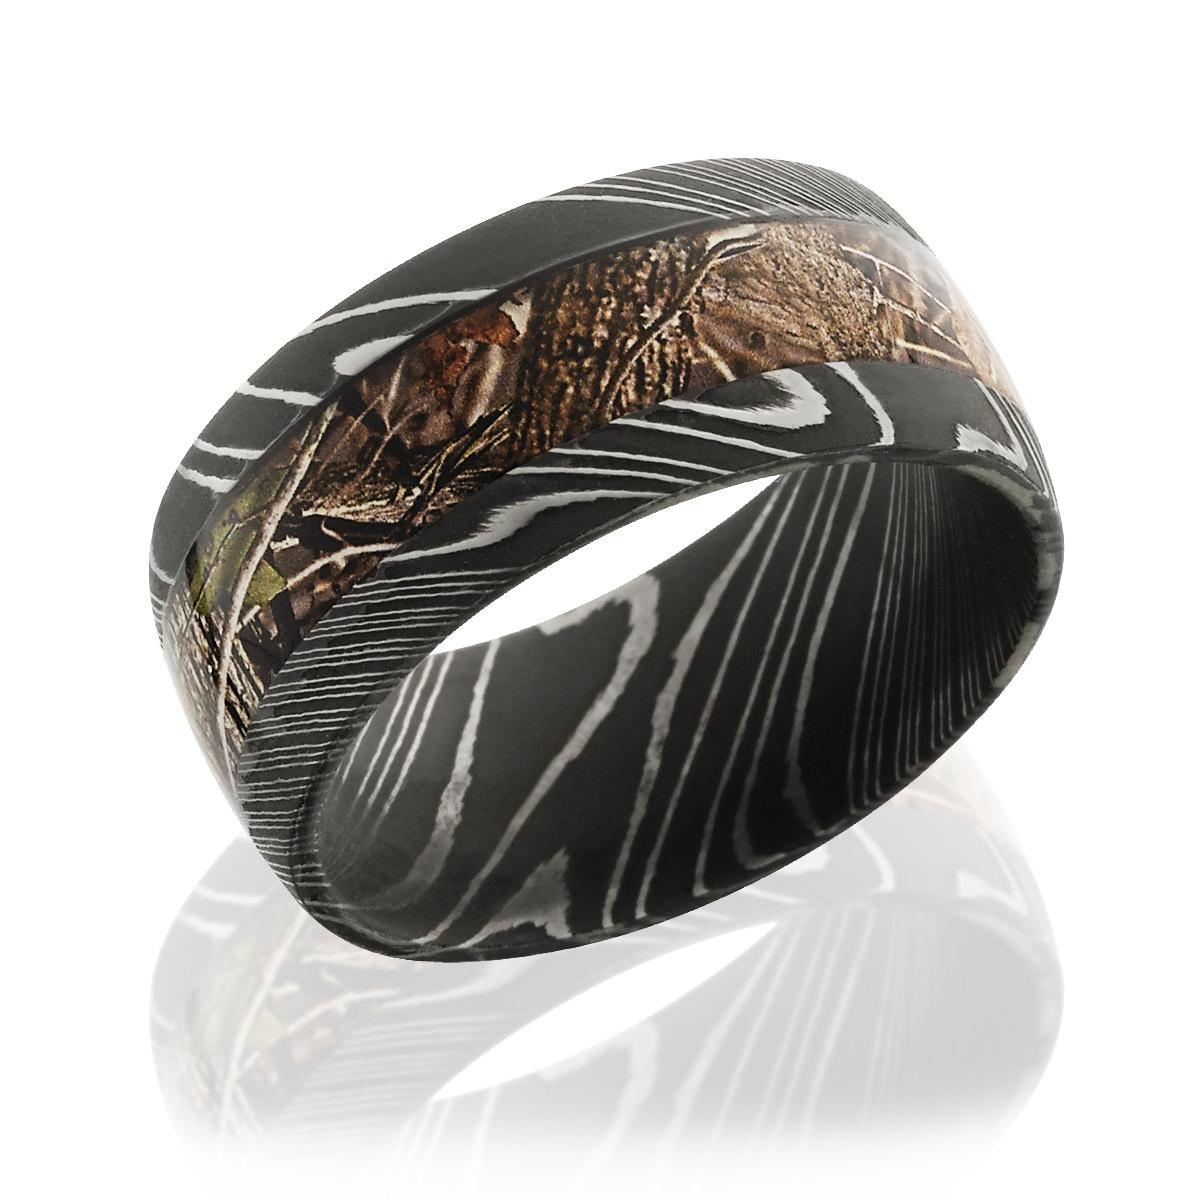 Unique Damascus Steel And Camo Wedding Band, 10mm Wide Within Men's Damascus Wedding Bands (View 15 of 15)